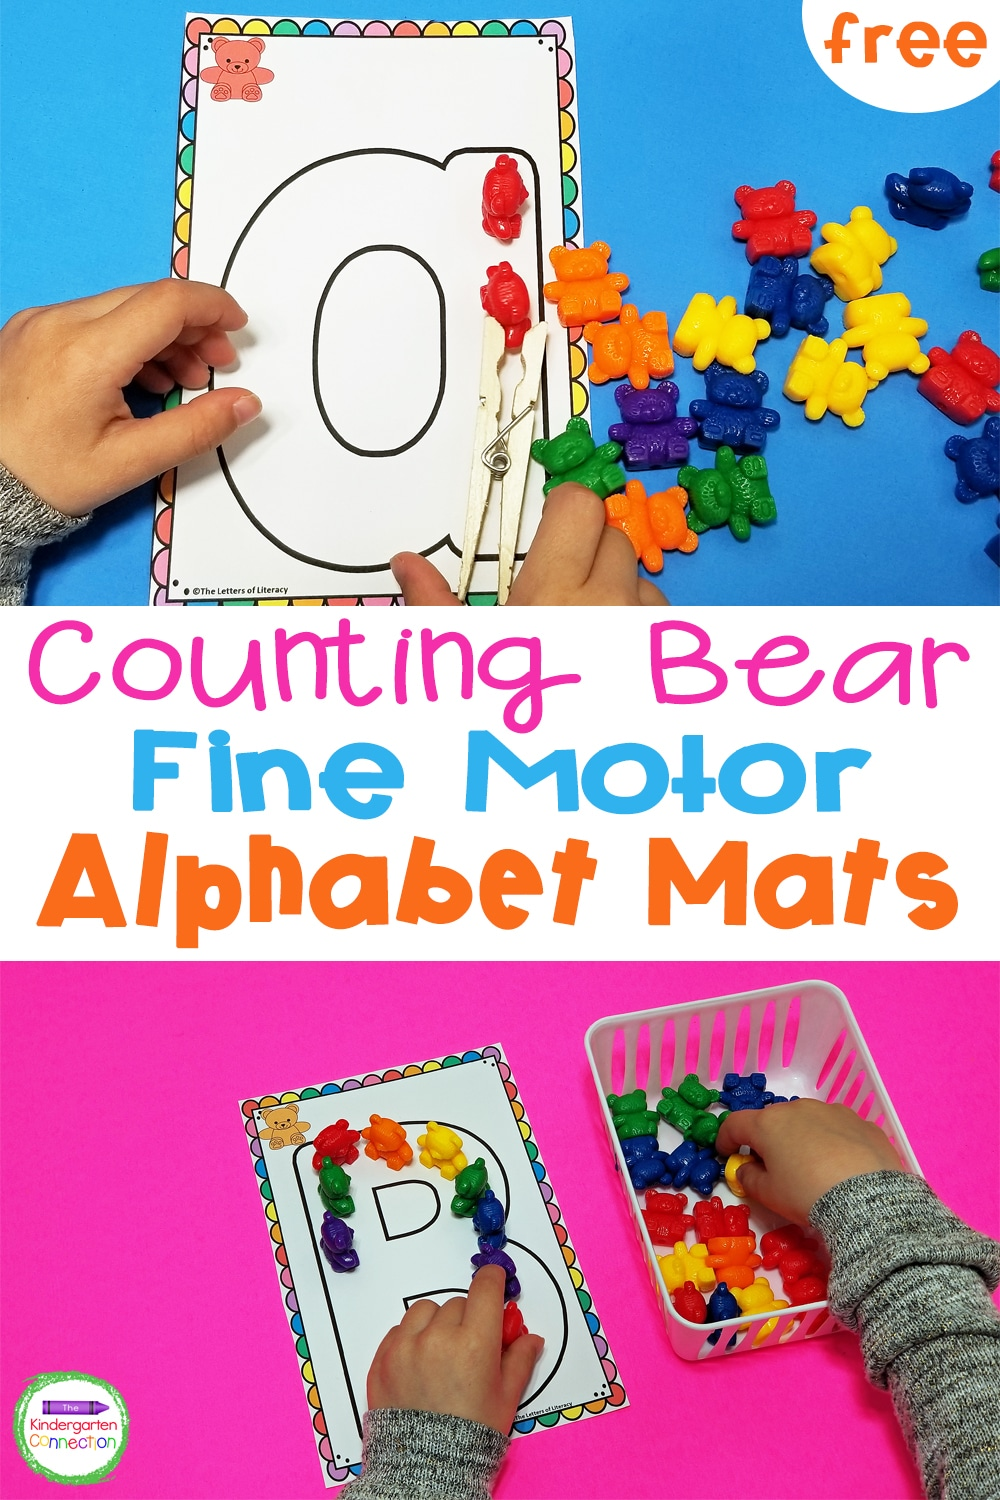 These Counting Bear Fine Motor Alphabet Mats are so much fun for learning letters and developing fine motor skills in Pre-K & Kindergarten!